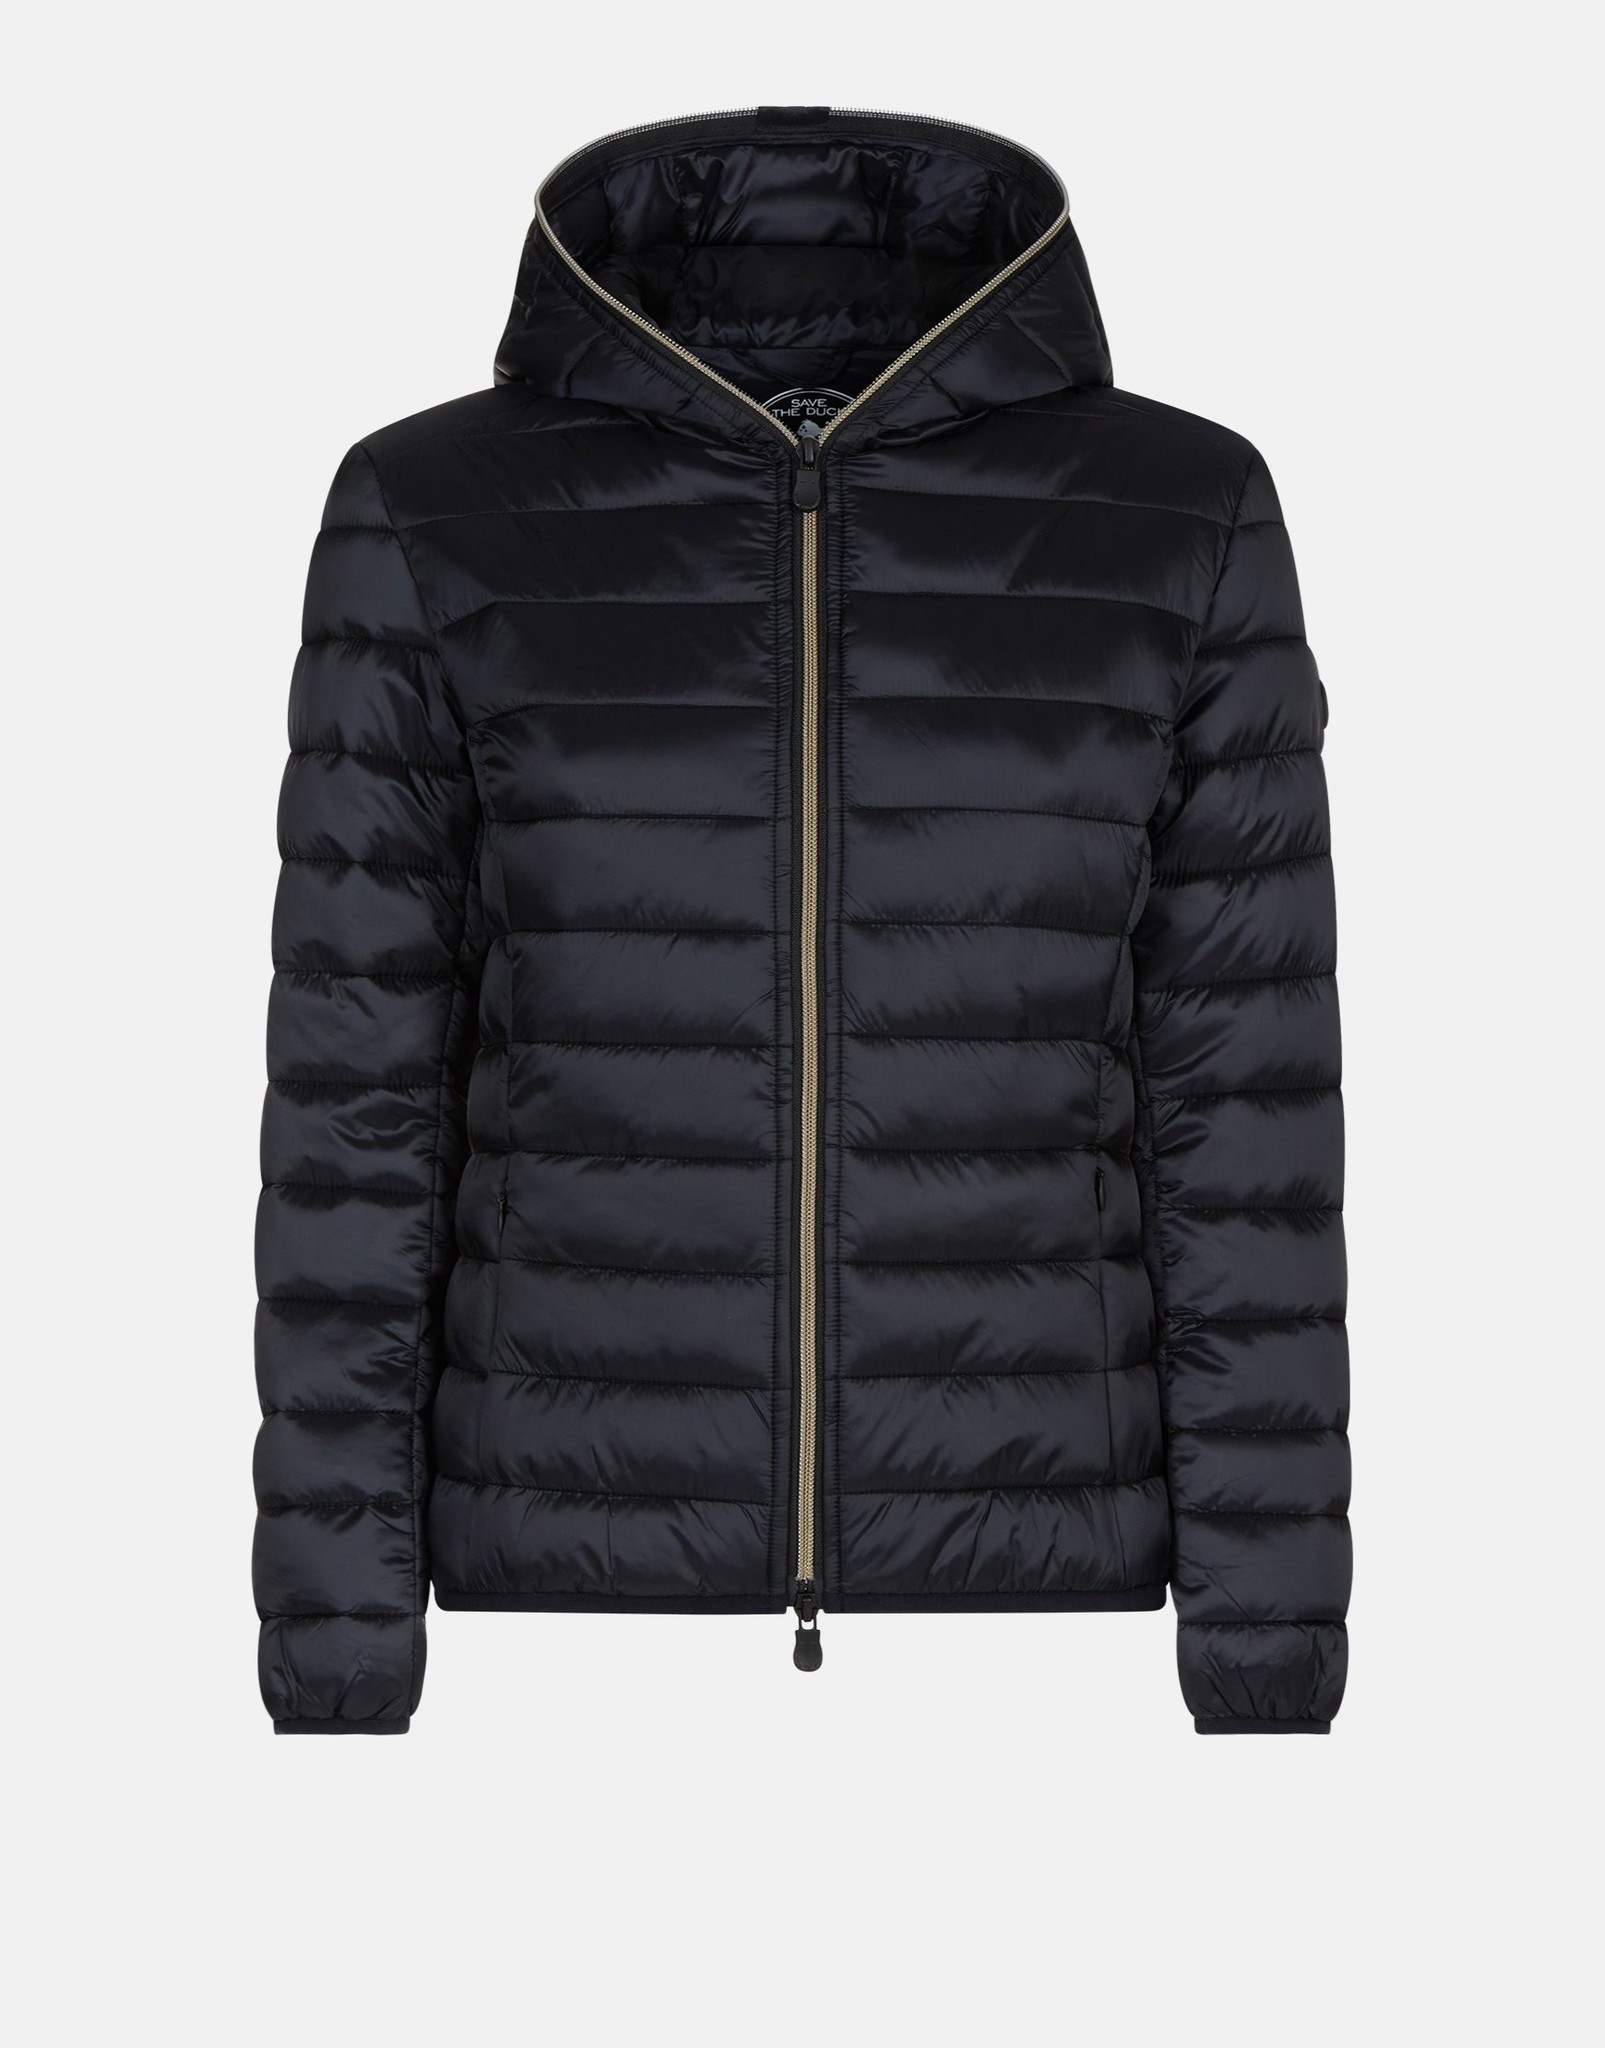 Save the Duck Save The Duck Women's IRIS Hooded Jacket